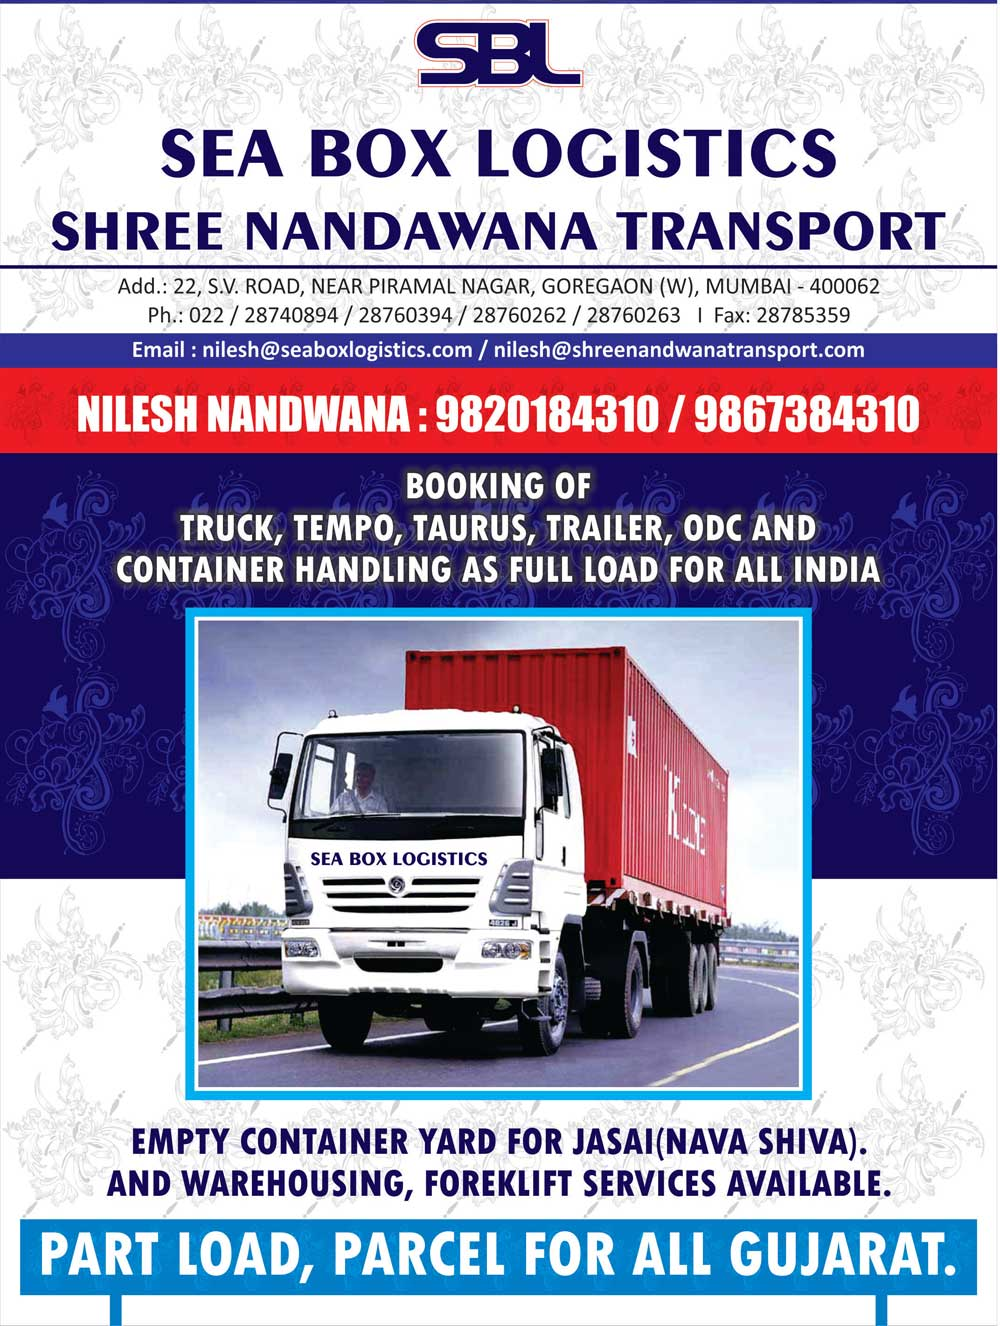 Shree Nandwana Transport